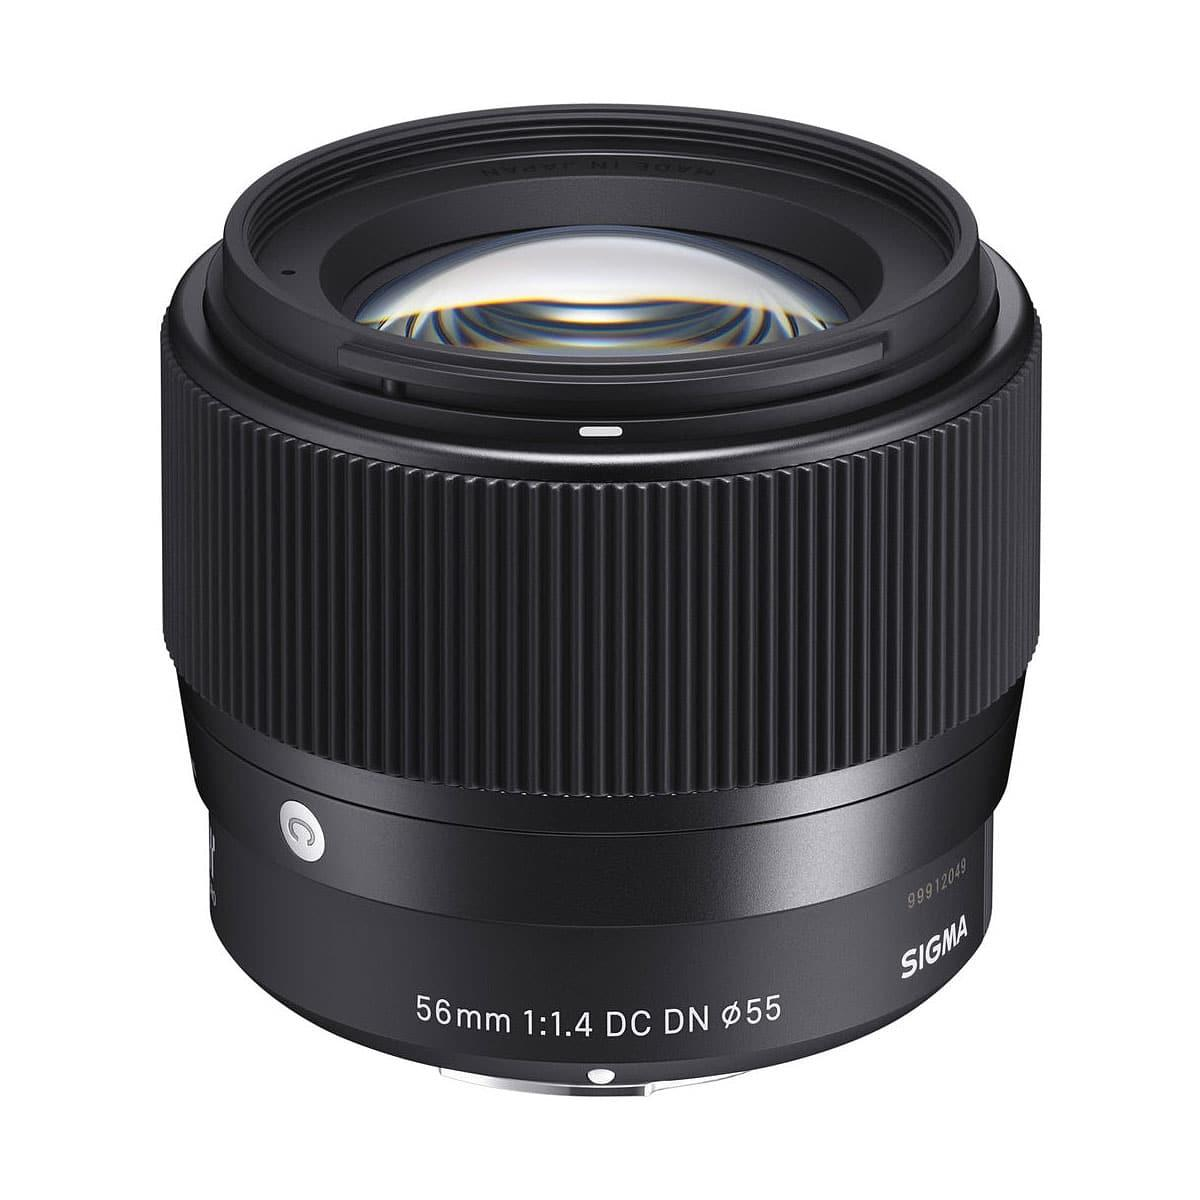 Sigma 56mm f/1.4 DC DN Contemporary MFT